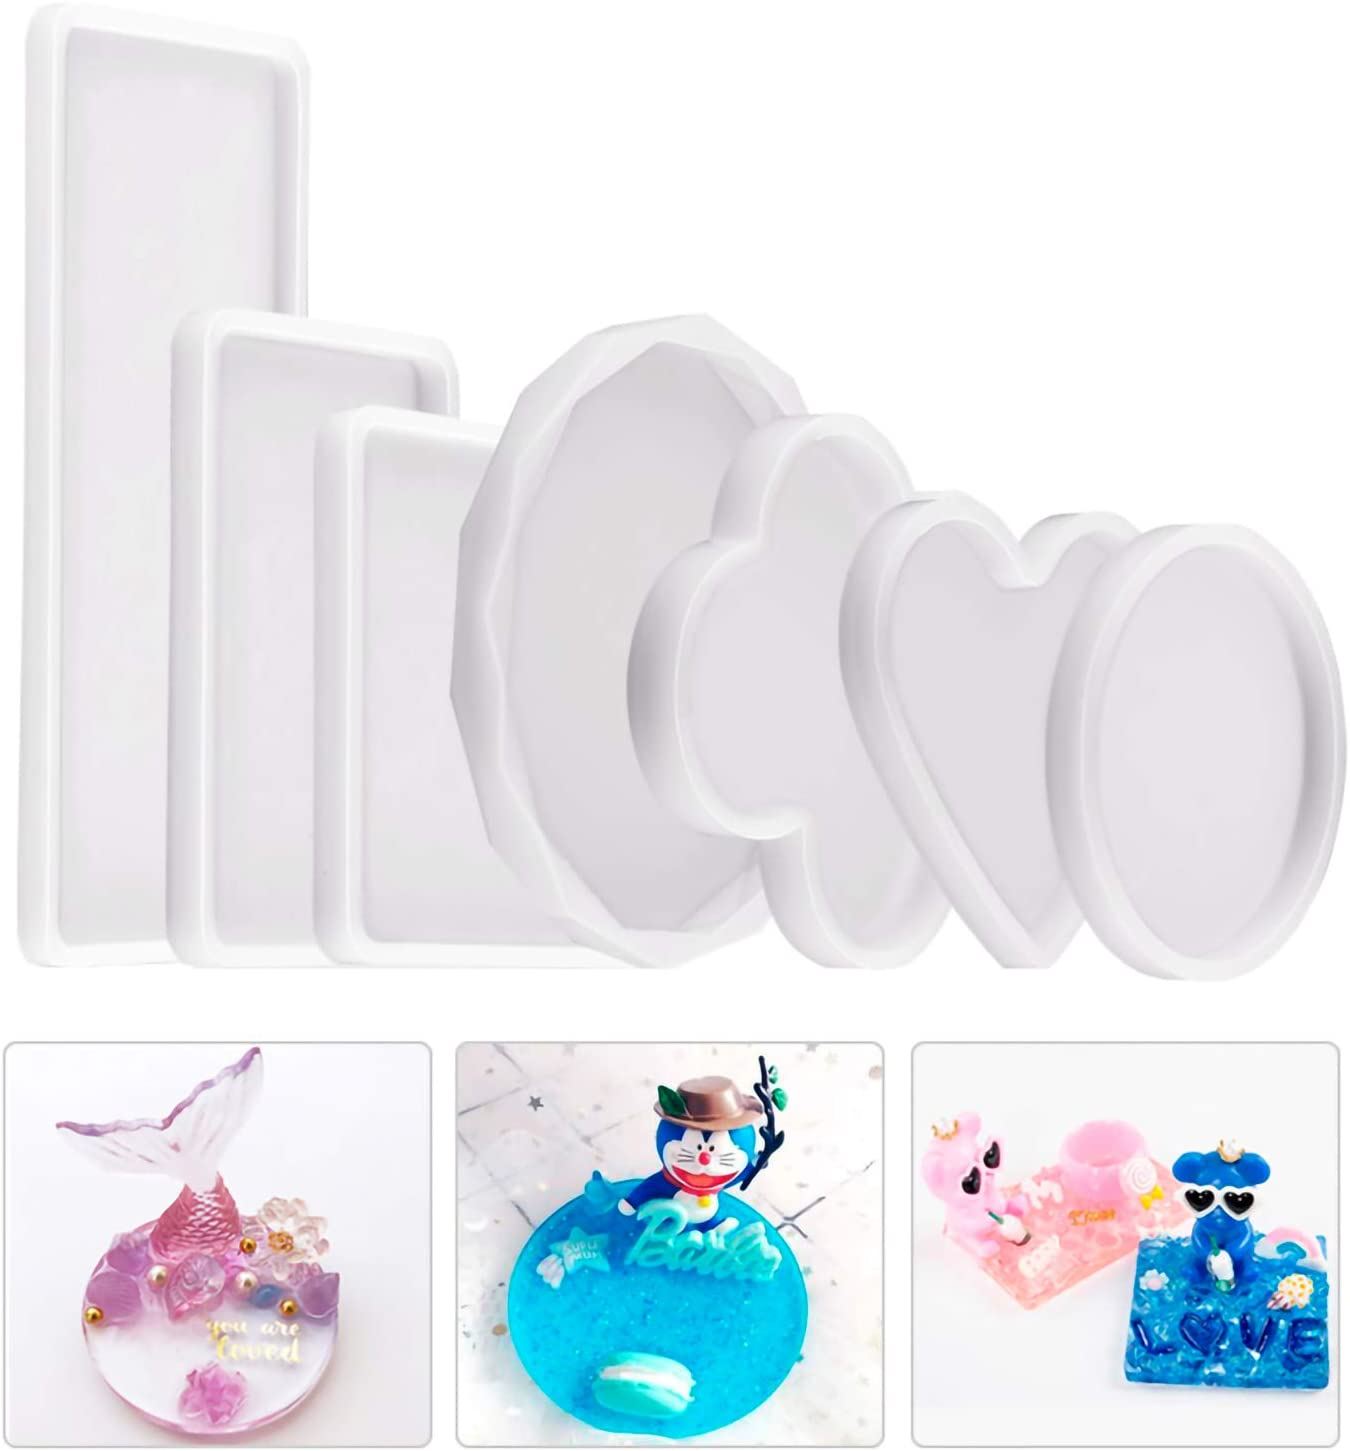 WANDIC Resin 4 years warranty Molds Set Sale Special Price of 7 Rou with Casting Epoxy Moulds